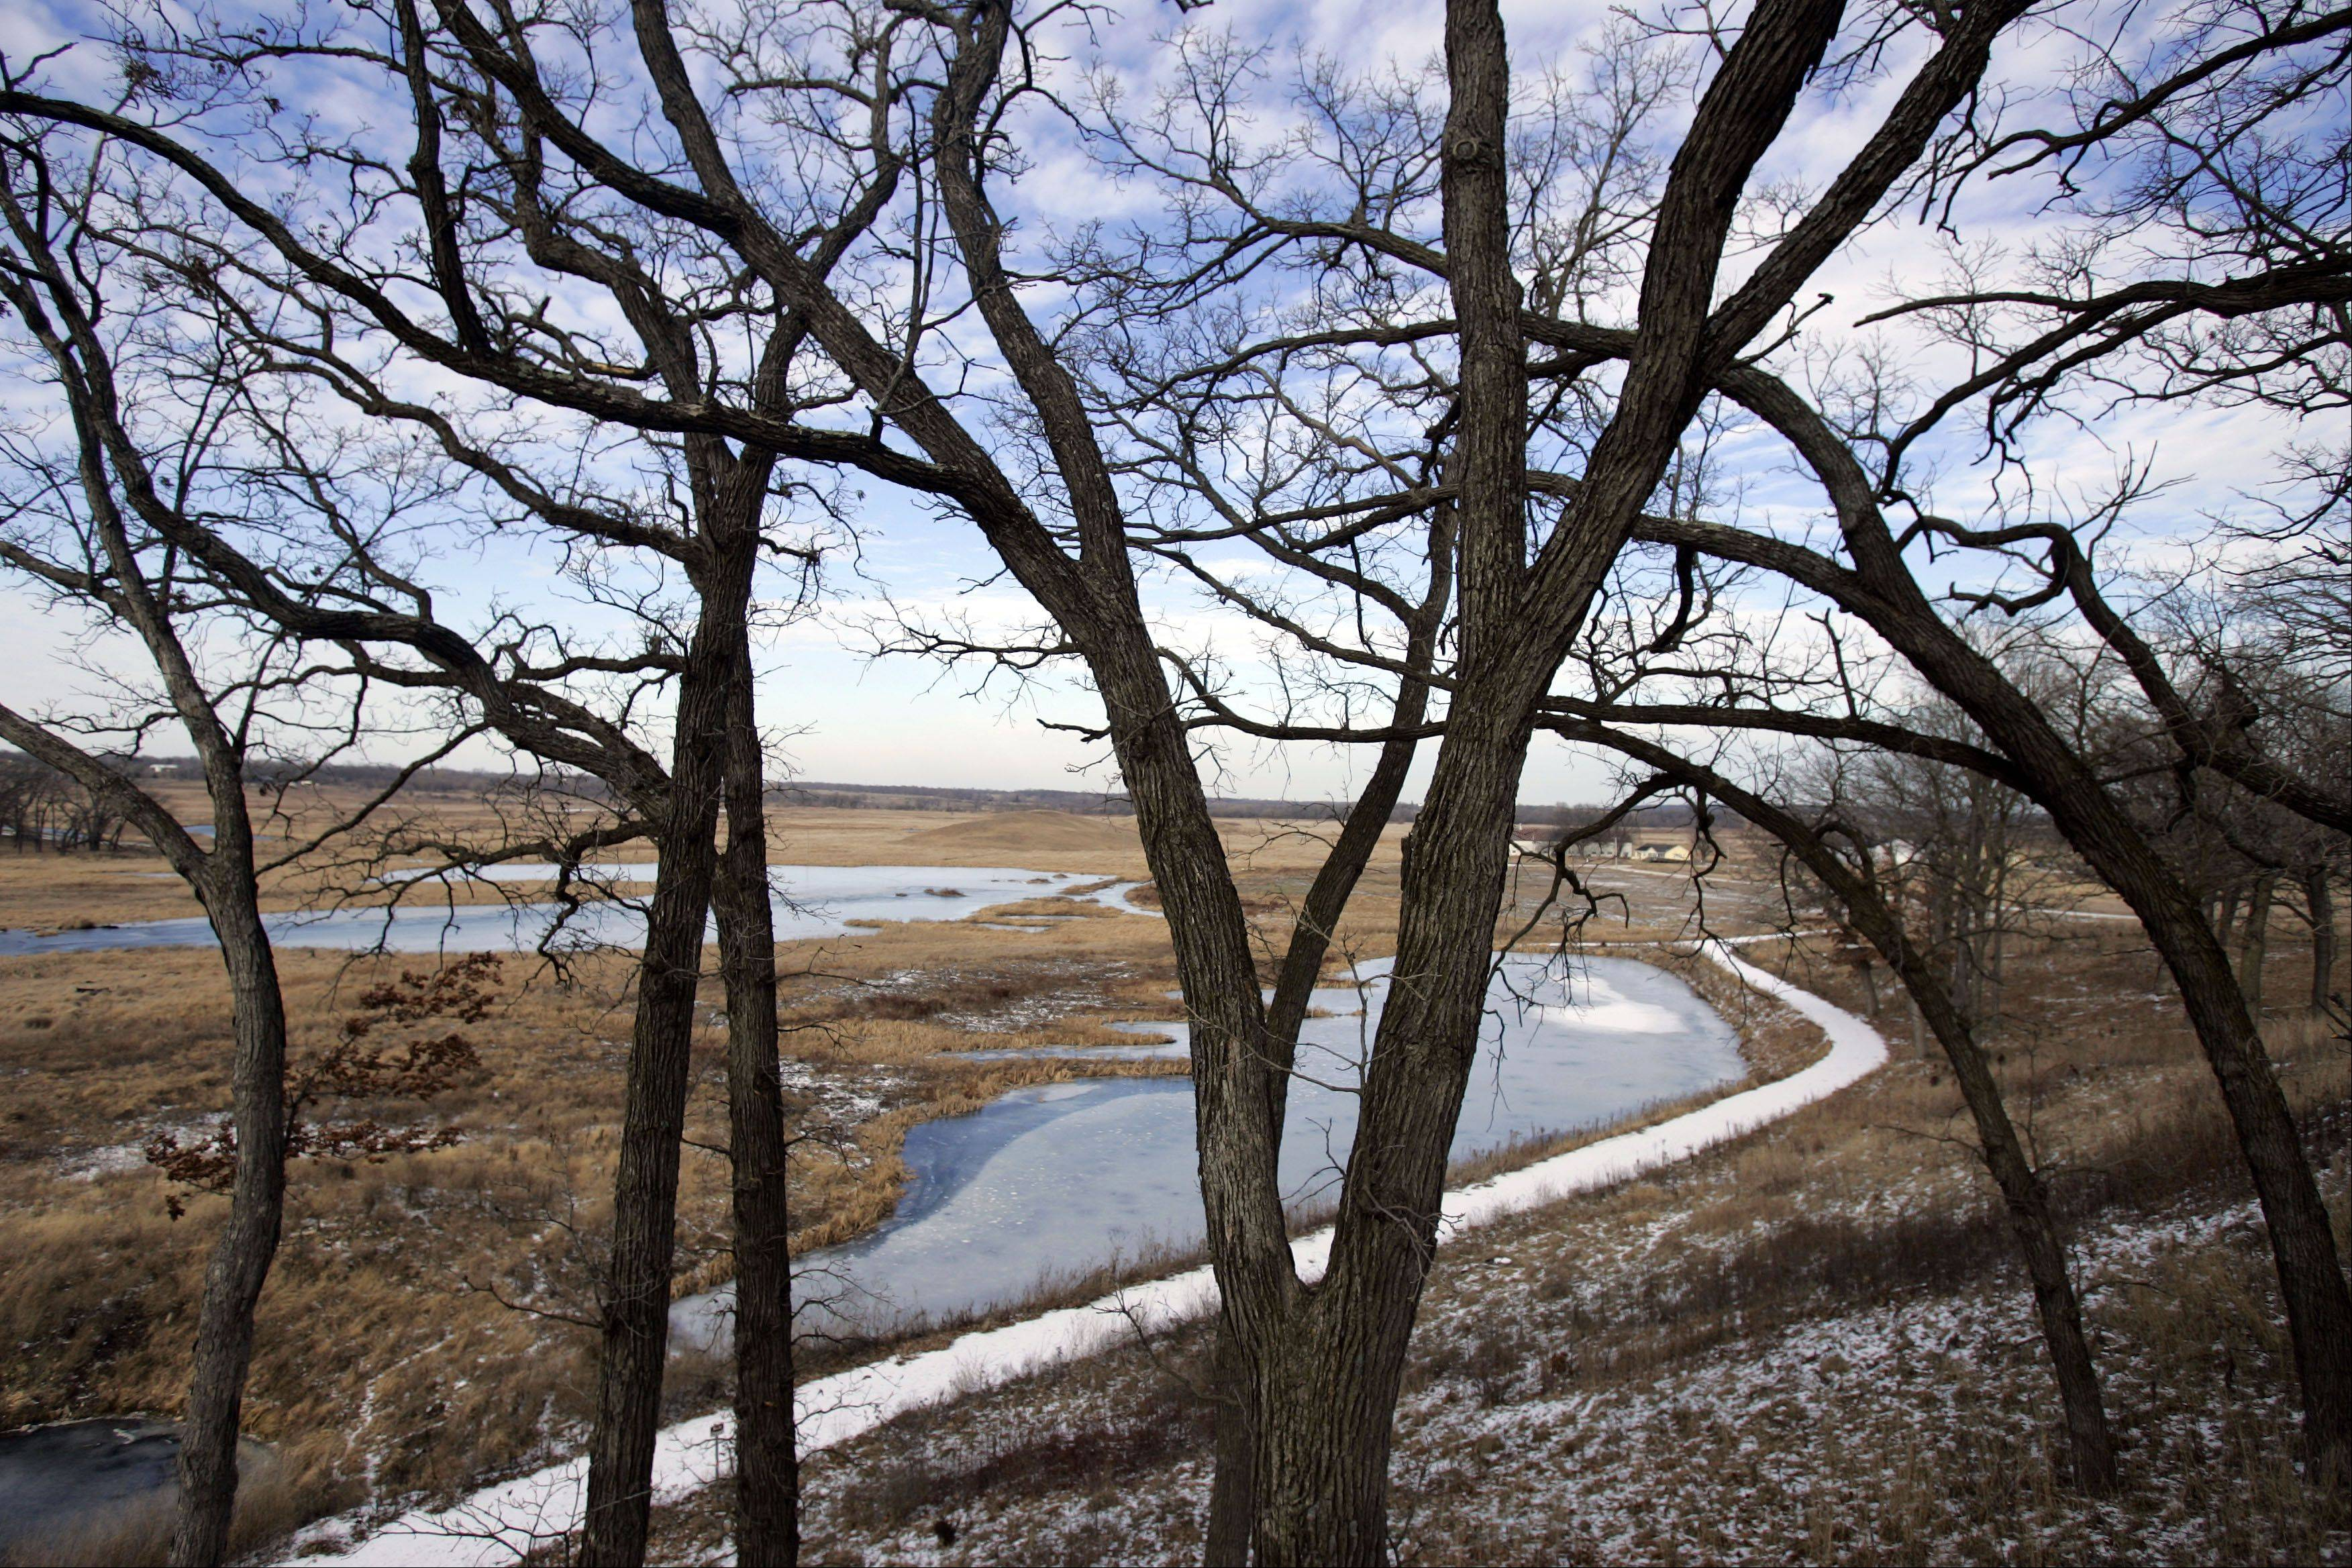 Plenty of open land at the Glacial Park and Hackmatack National Wildlife Refuge in McHenry County.